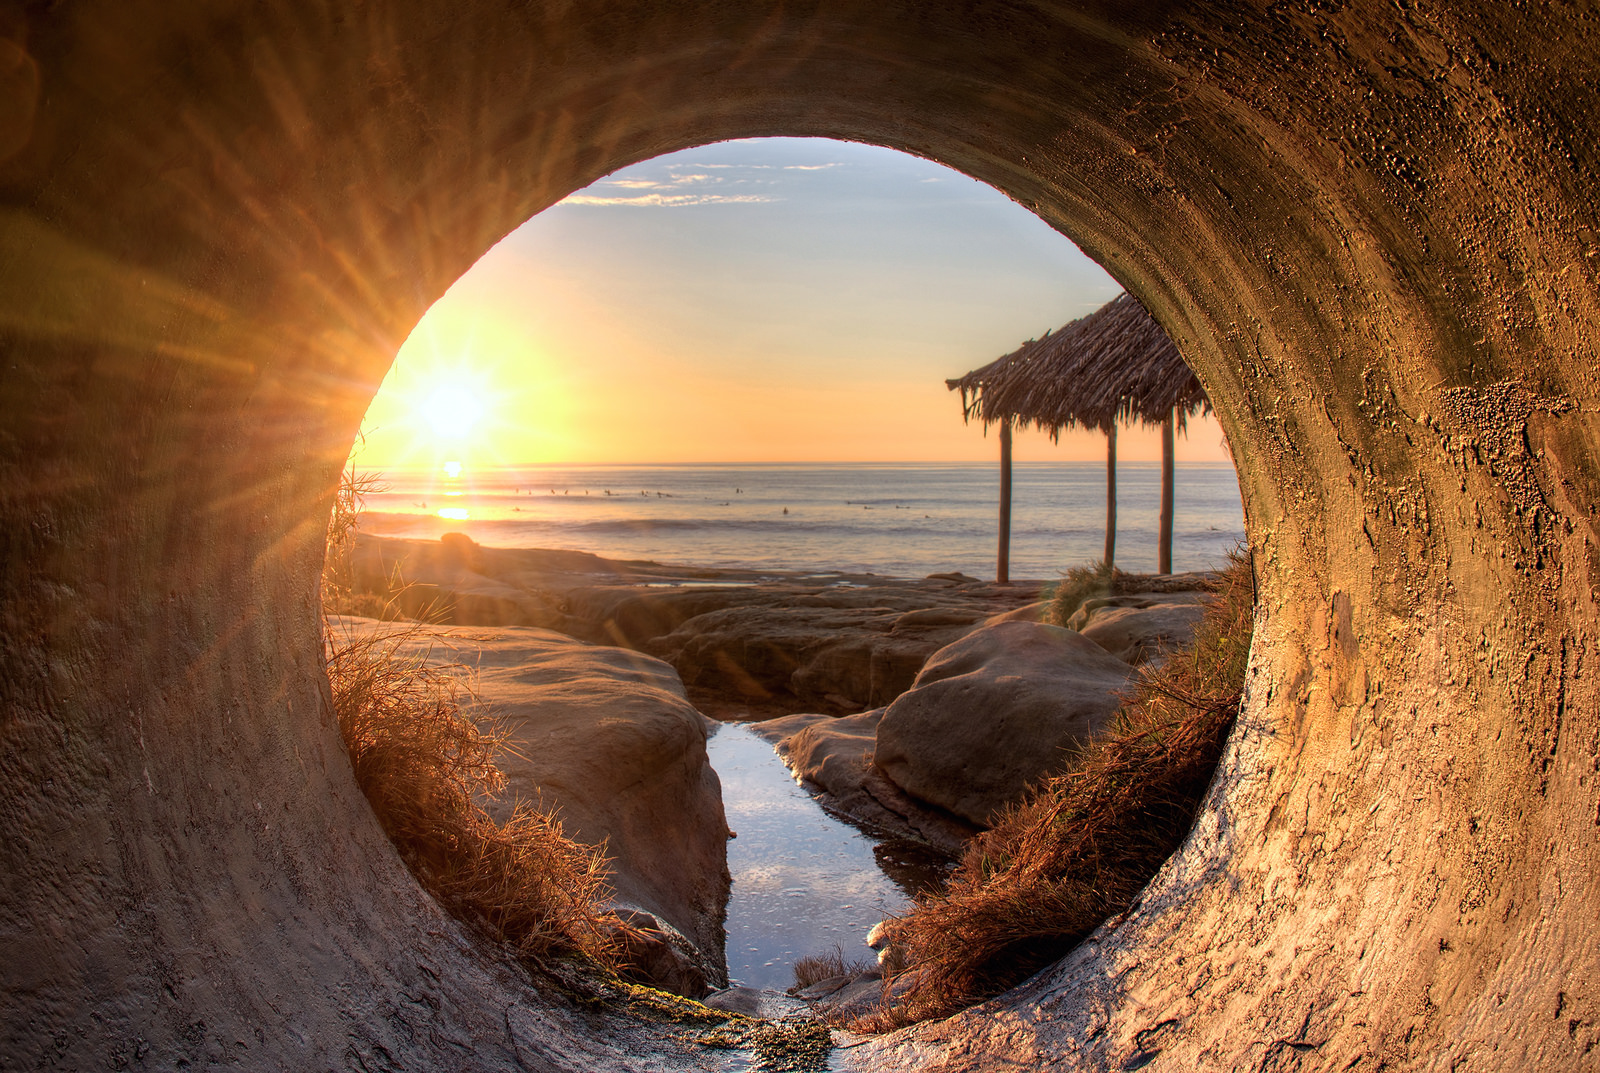 Image: Looking out at the sunset from a sewer tunnel